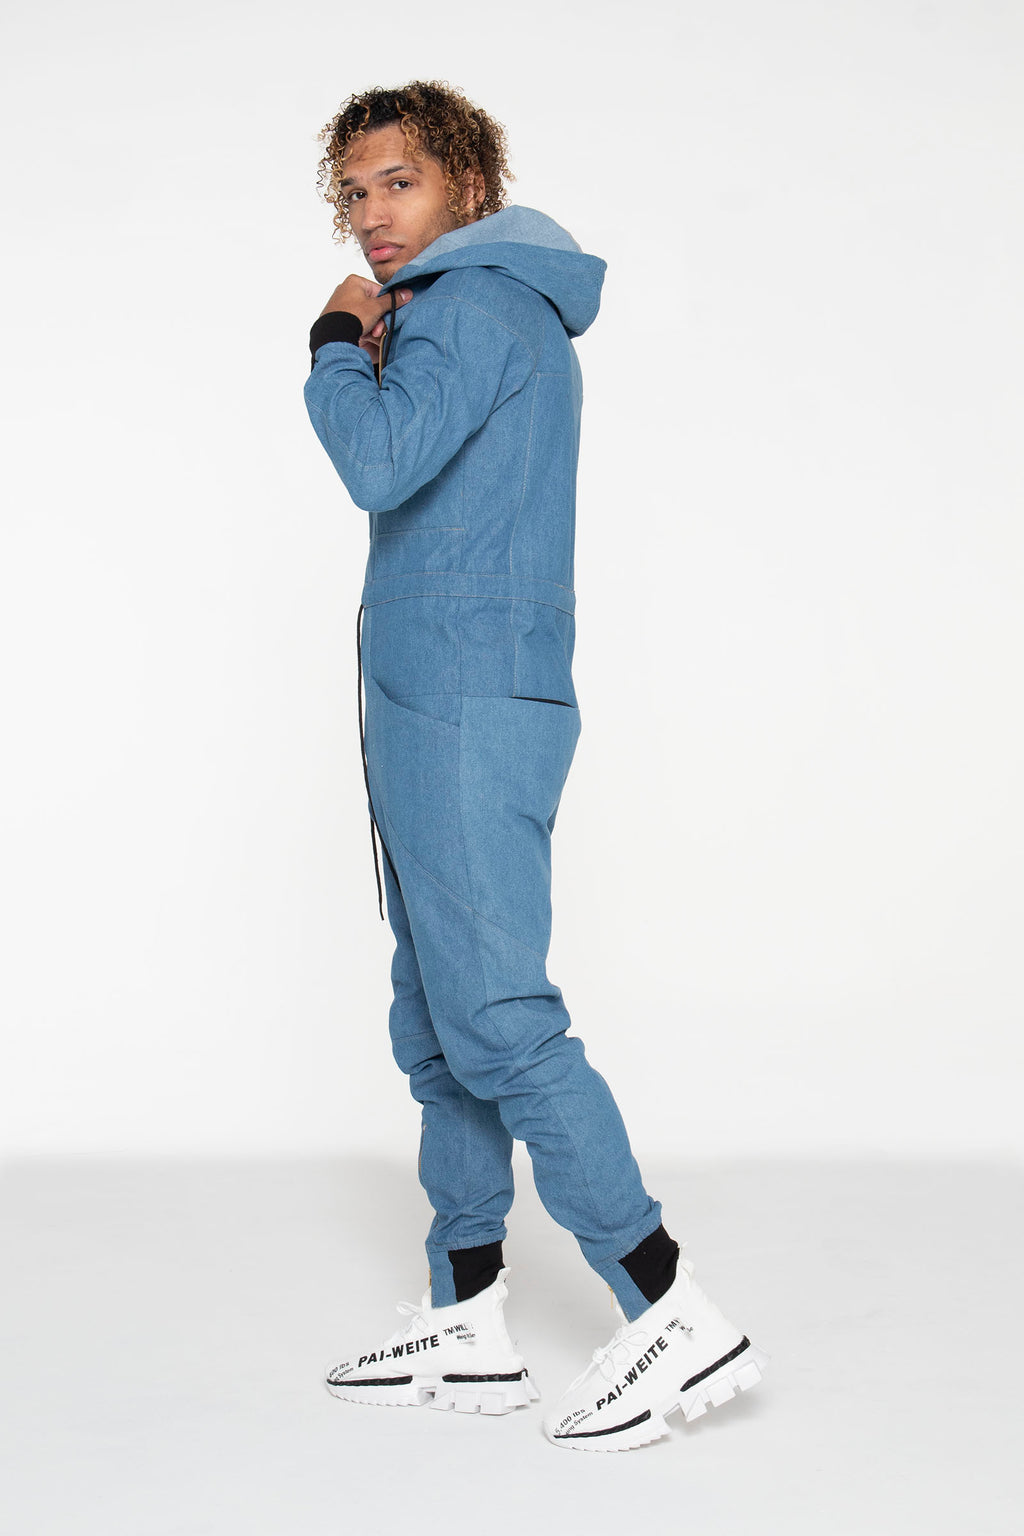 (PRE-ORDER) Light Blue Denim Unisex Jumpsuit - pacorogiene